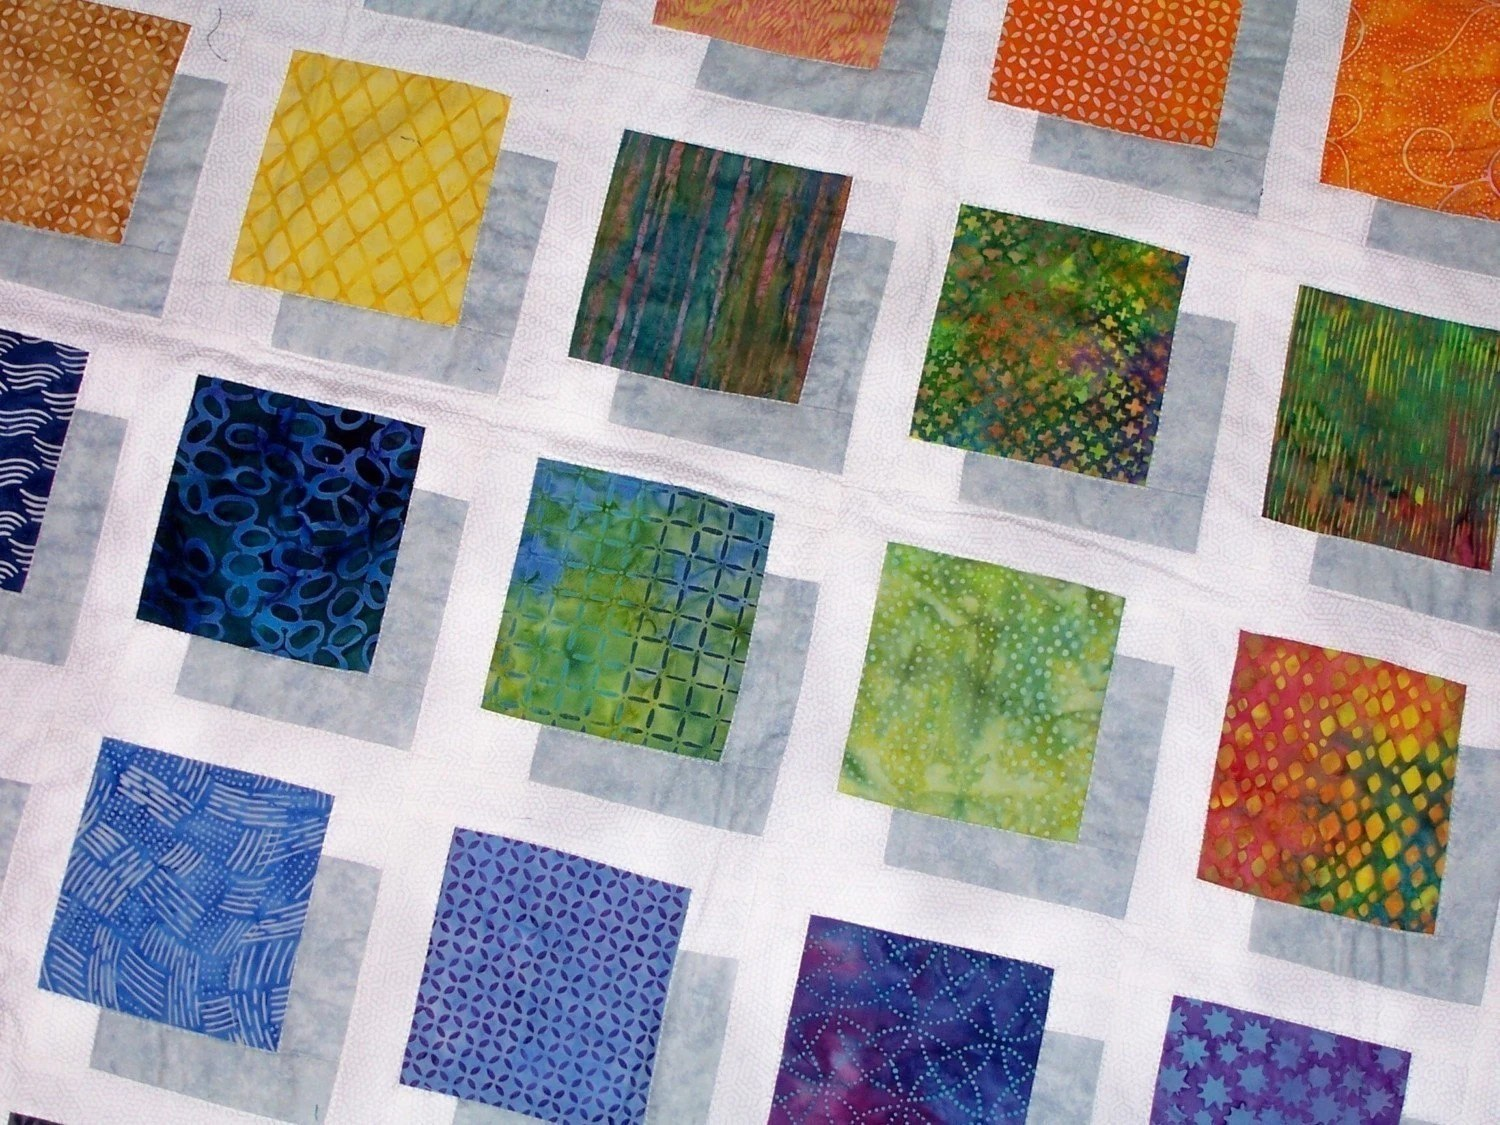 Color Block Quilt Pattern To Make This Stunning Quilt Full